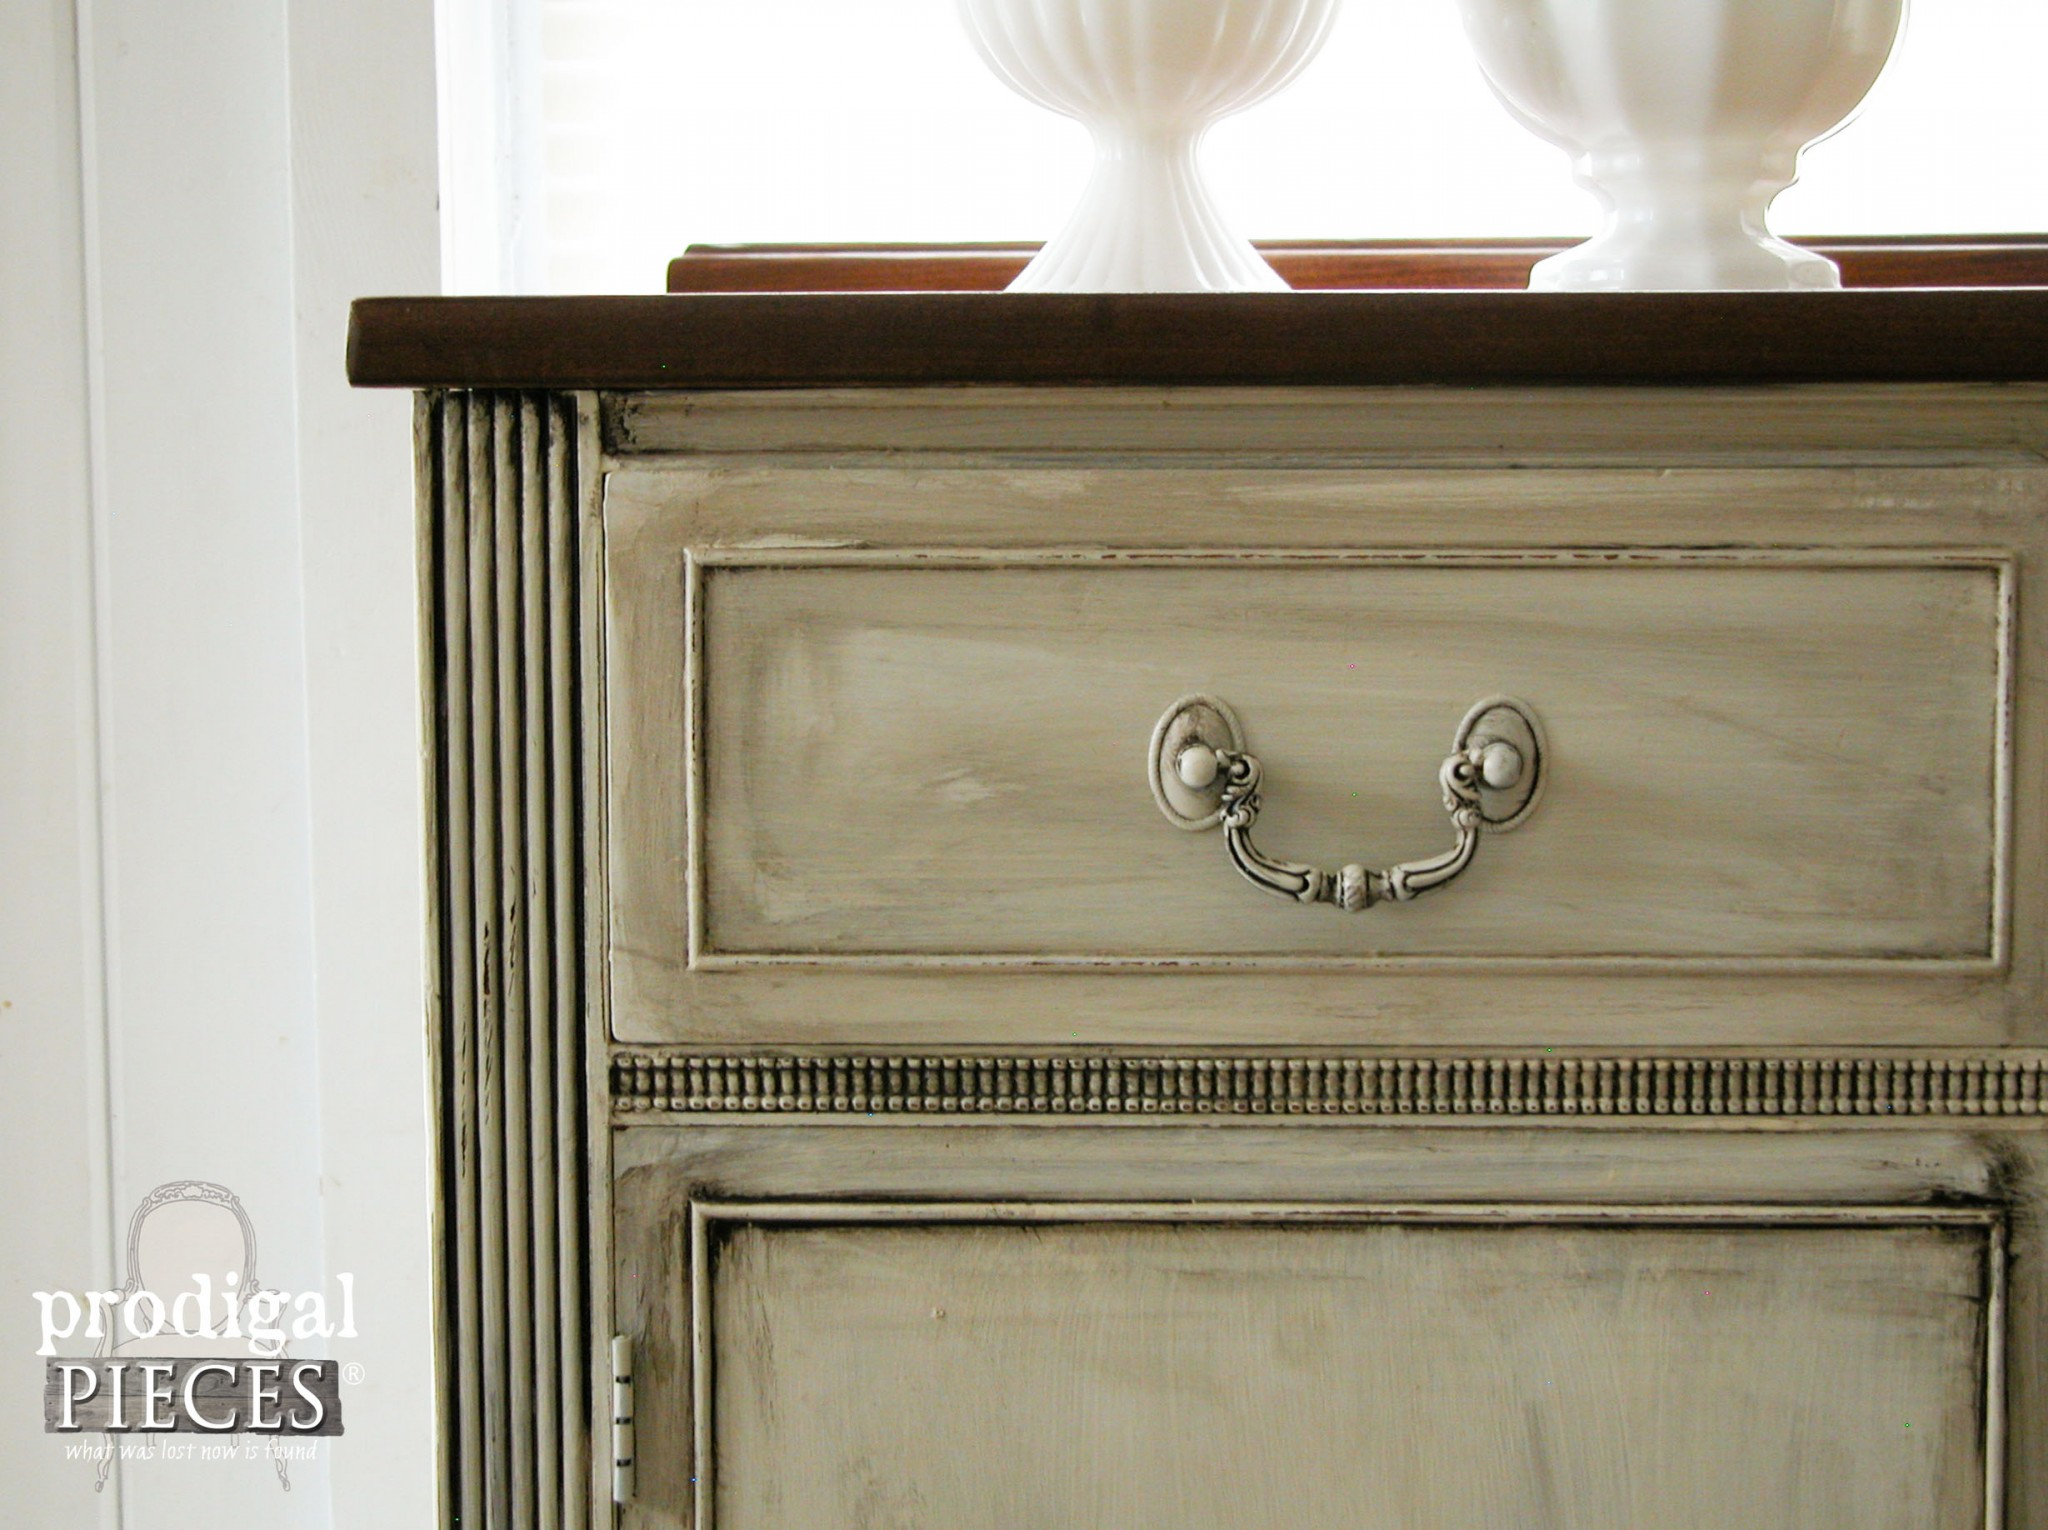 Glazed Vintage Sideboard by Prodigal Pieces | www.prodigalpieces.com